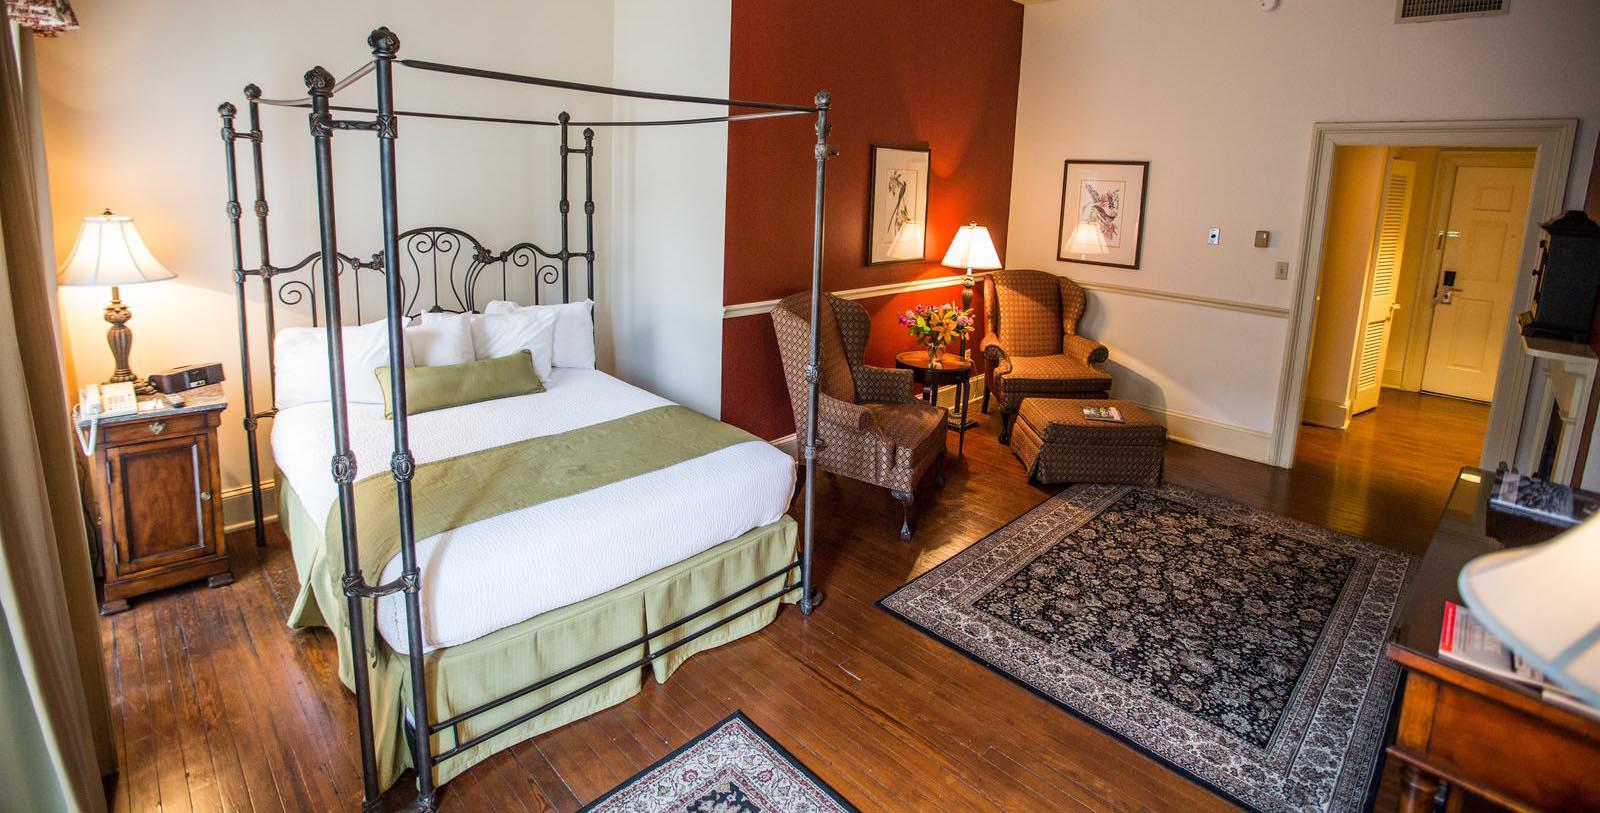 Image of Luxurious Guestroom River Street Inn, 1817, Member of the Historic Hotels of America, in Savannah, Georgia, Explore